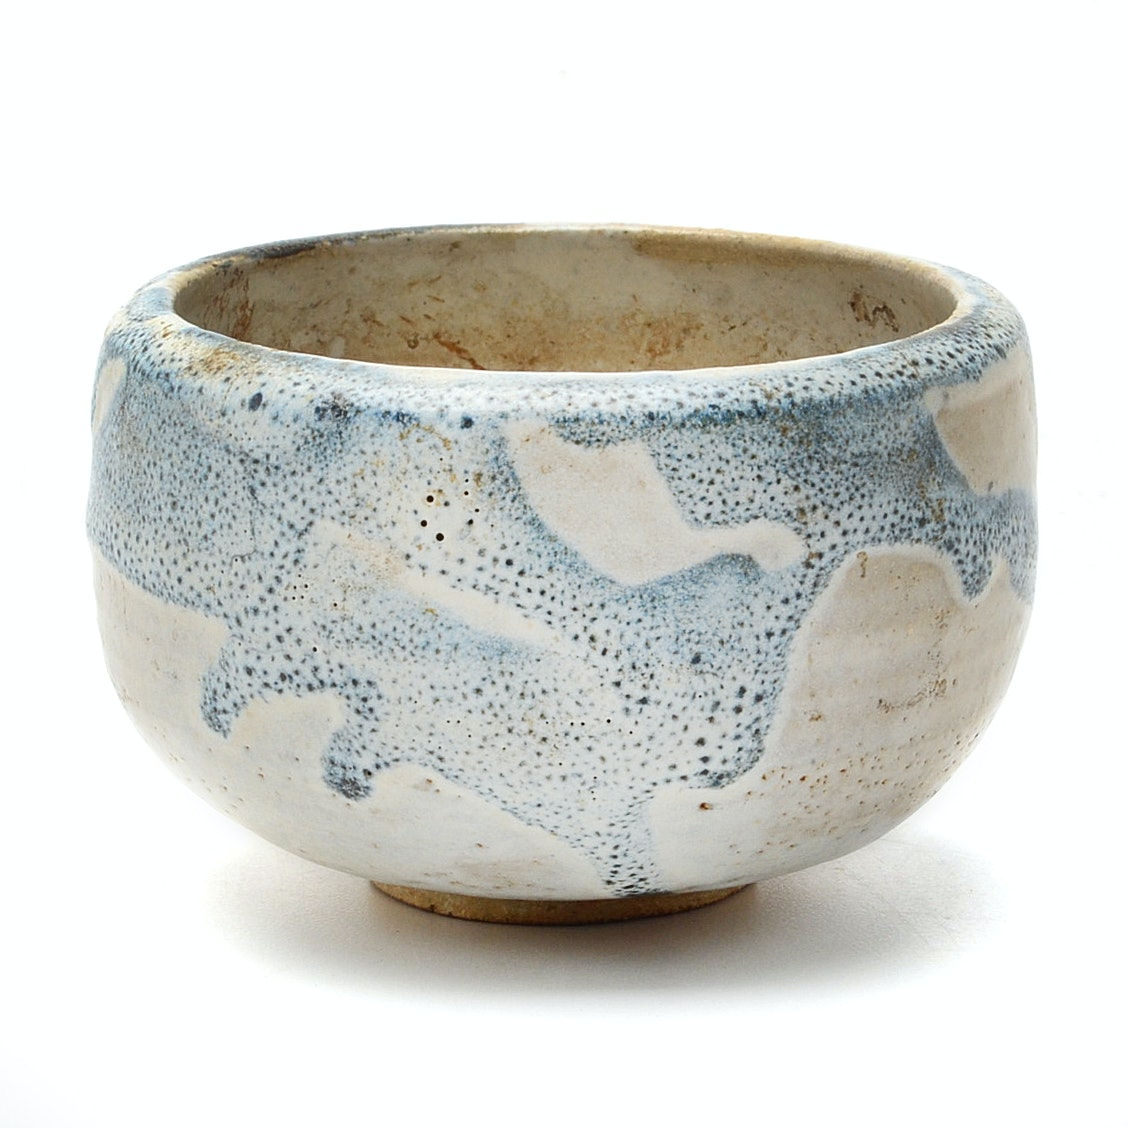 Japanese Early Meiji Period (1870's) aku Style Tea Bowl in Cream and Blue Glaze